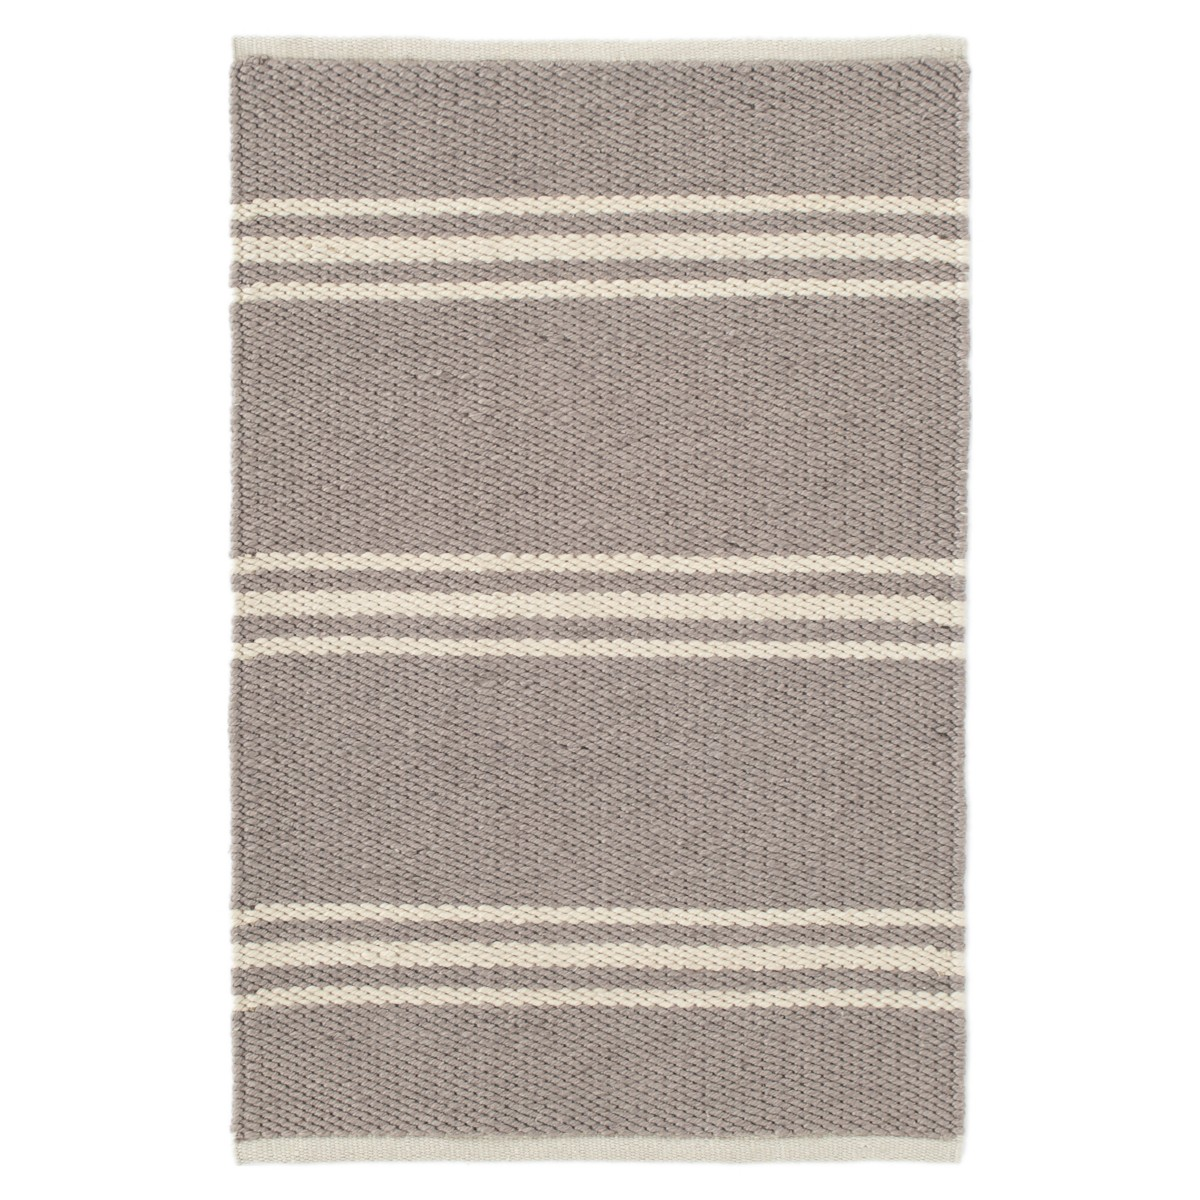 Lexington Indoor/Outdoor Rug - Grey